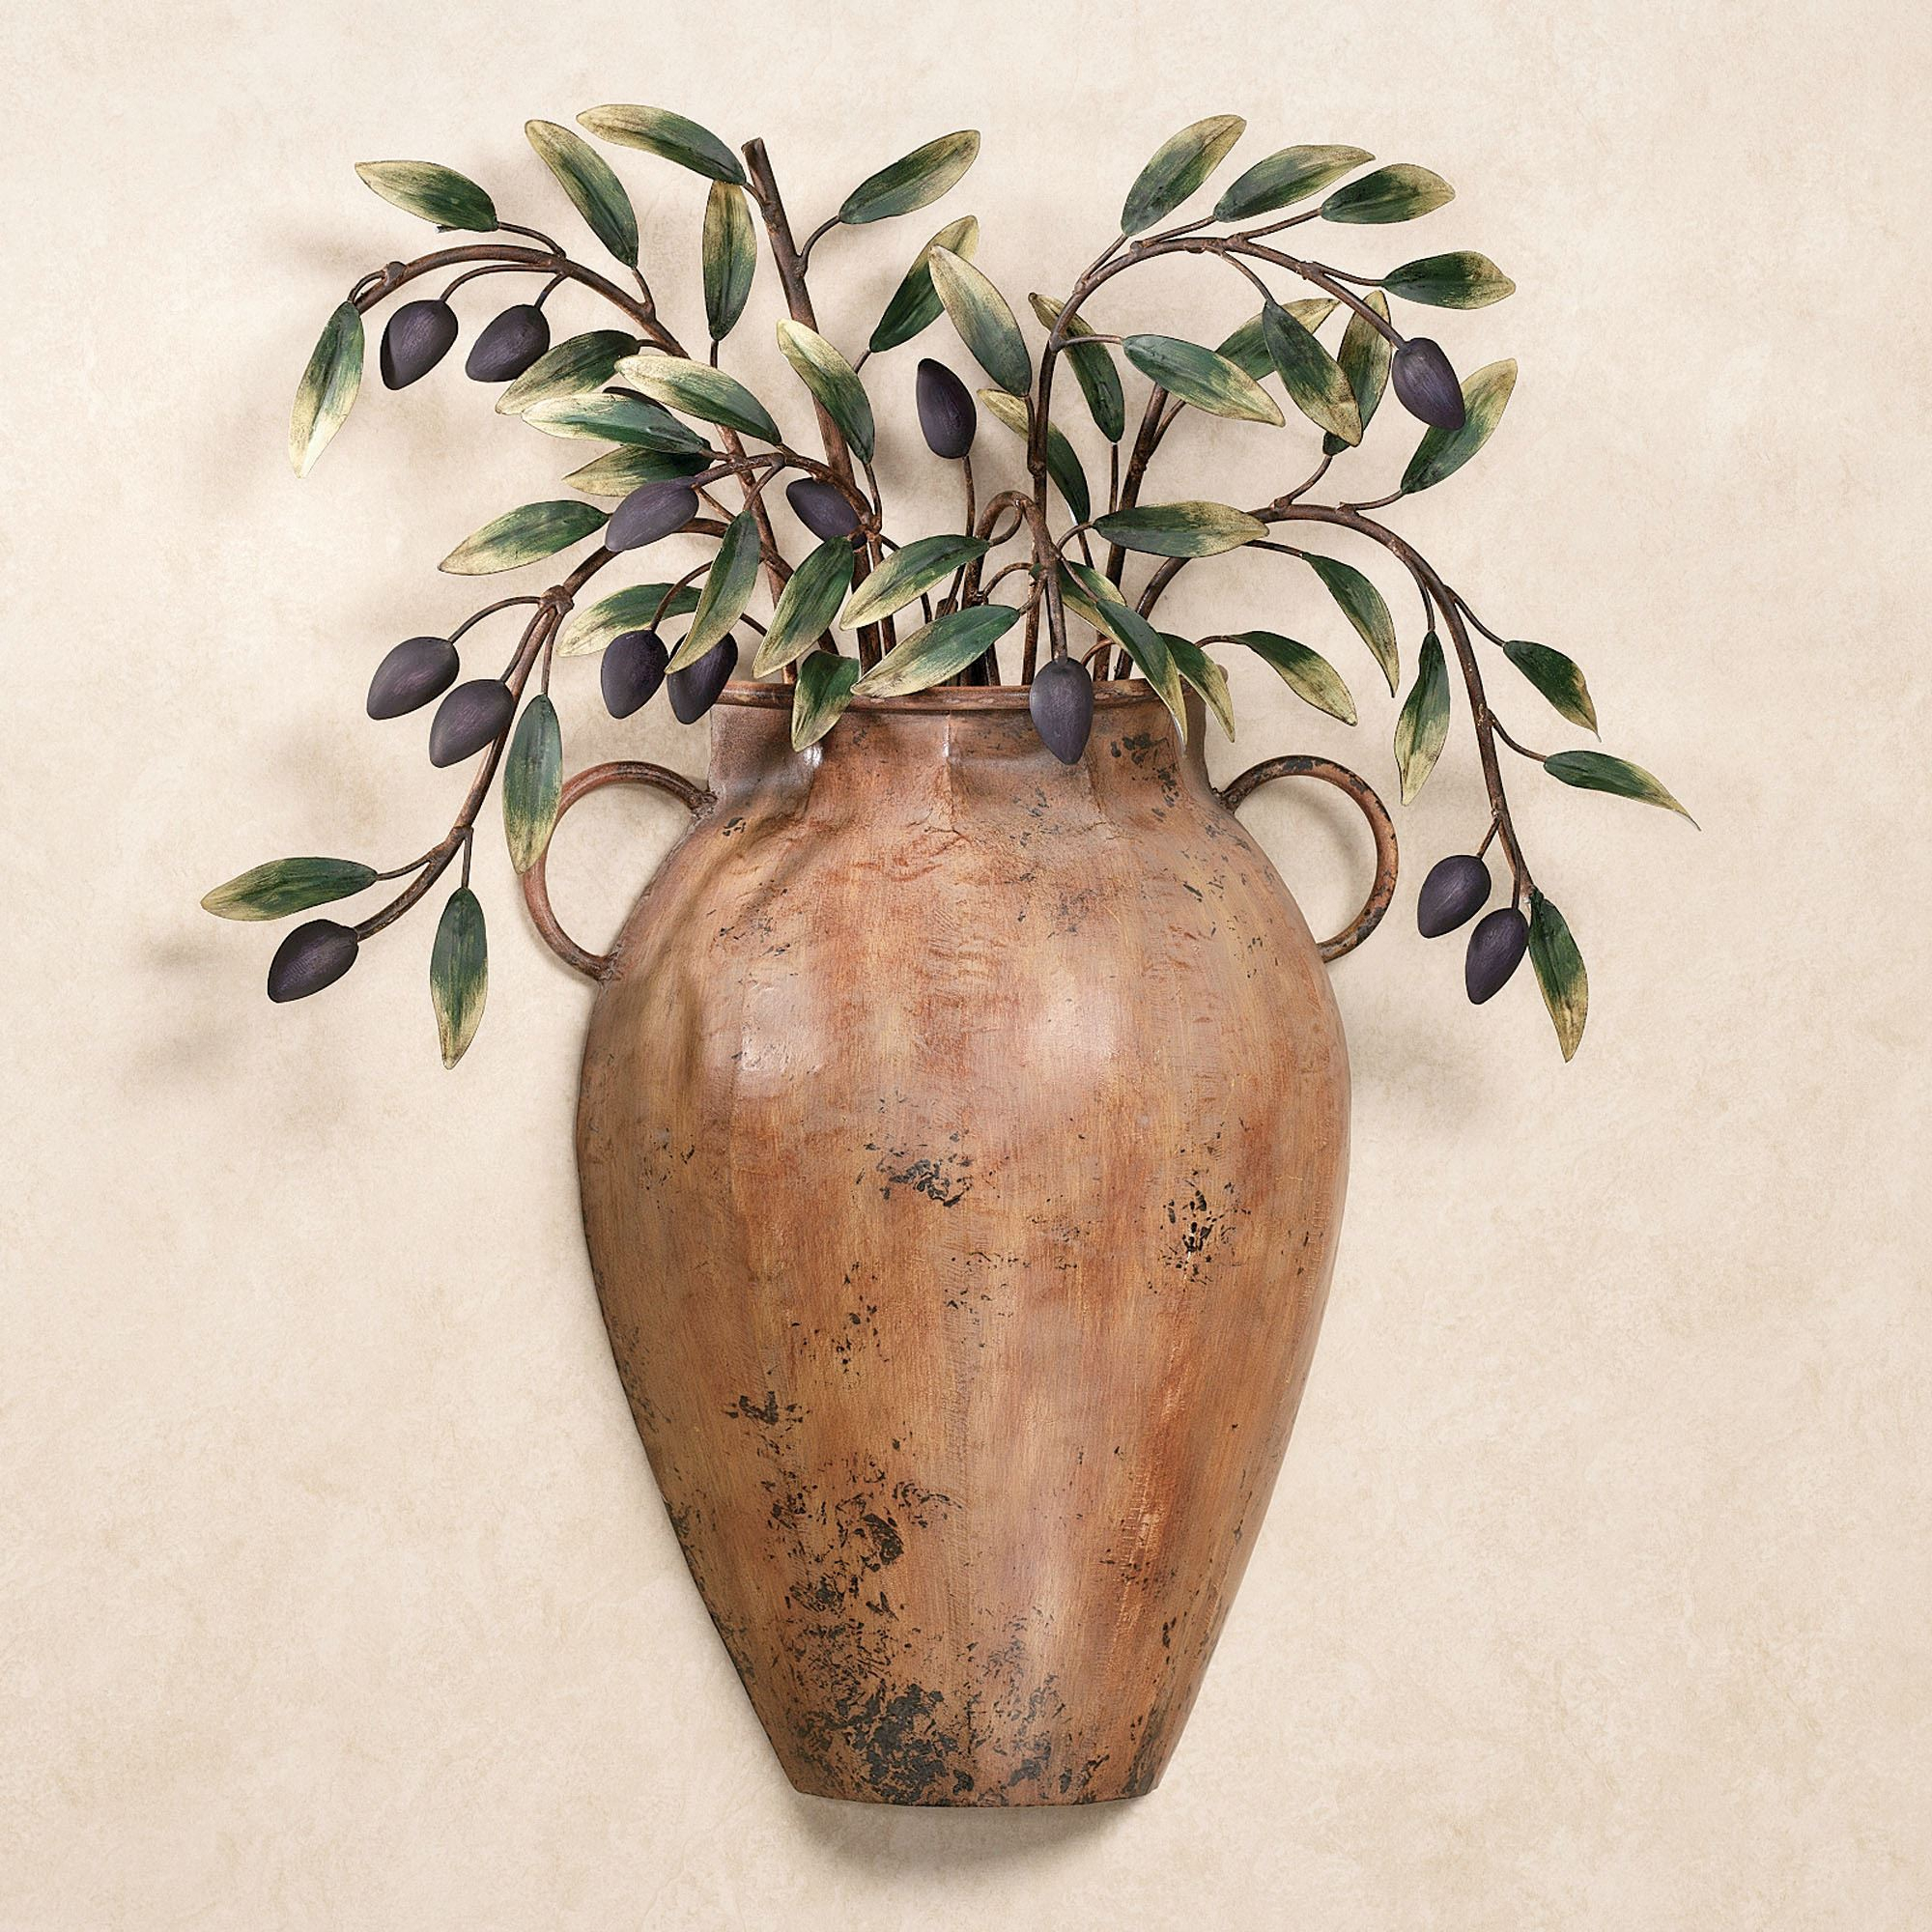 Valetta Vaso Con Olives Metal Wall Sculpture For Scattered Metal Italian Plates Wall Decor (View 26 of 30)